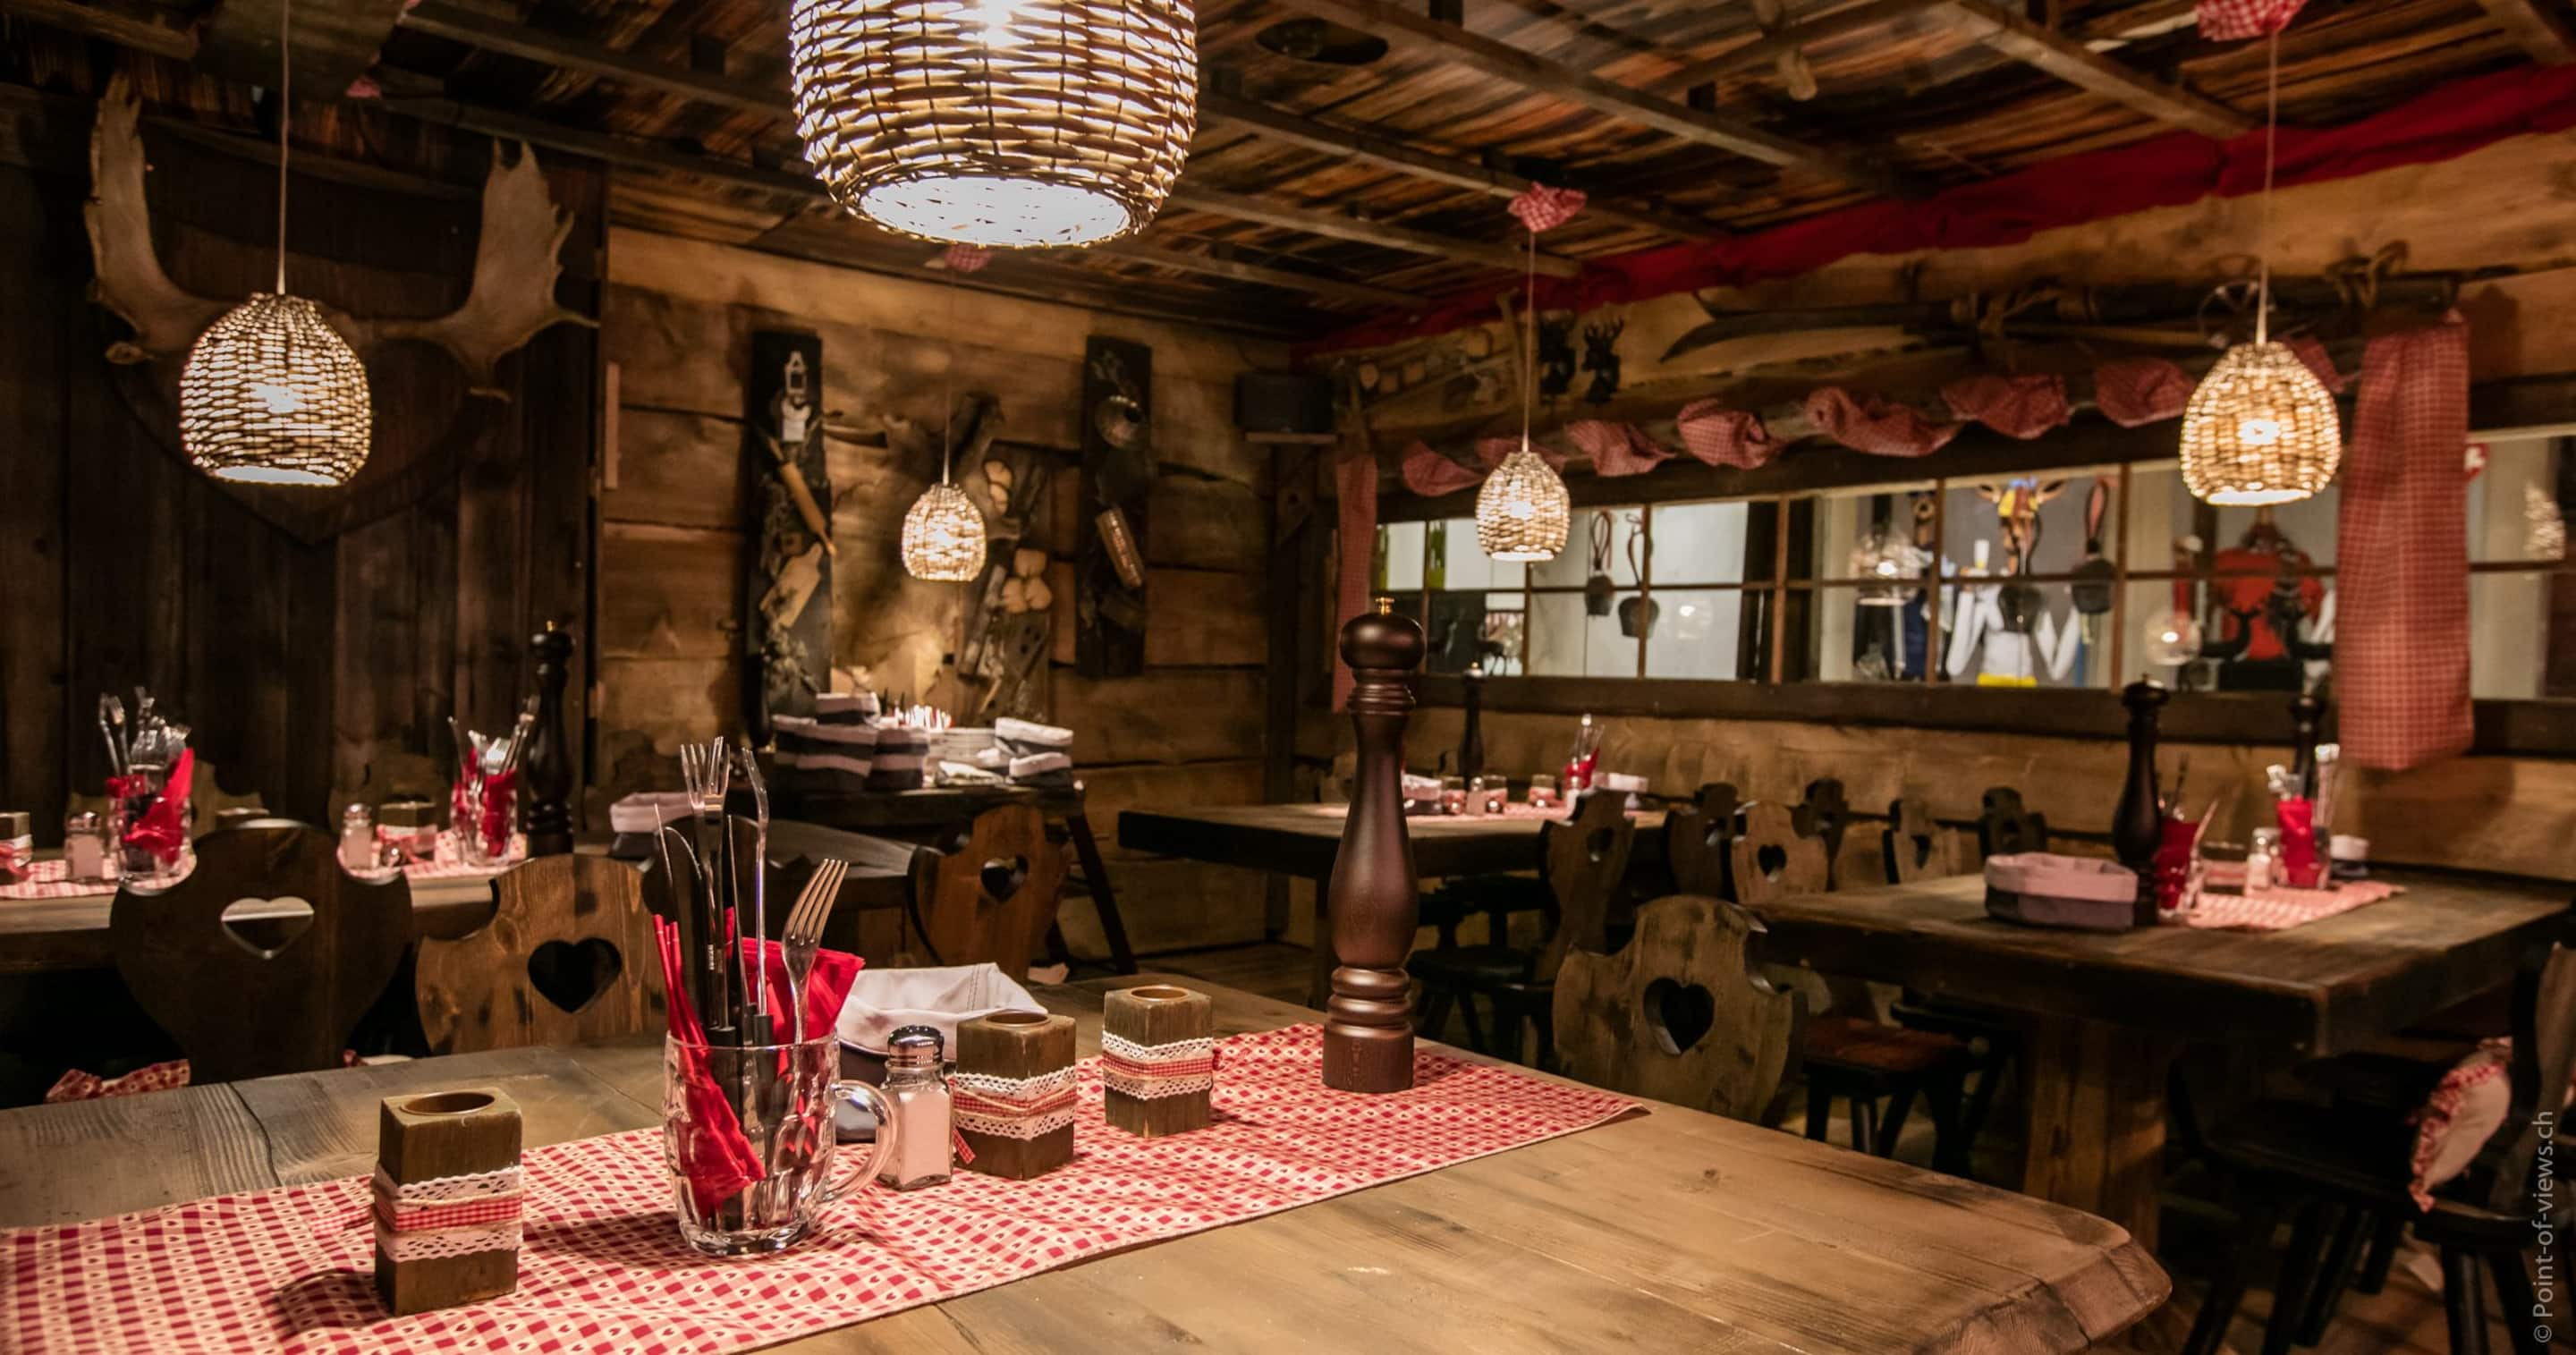 Le Chalet - French Cuisine On The Rhone River | Mandarin Oriental ...